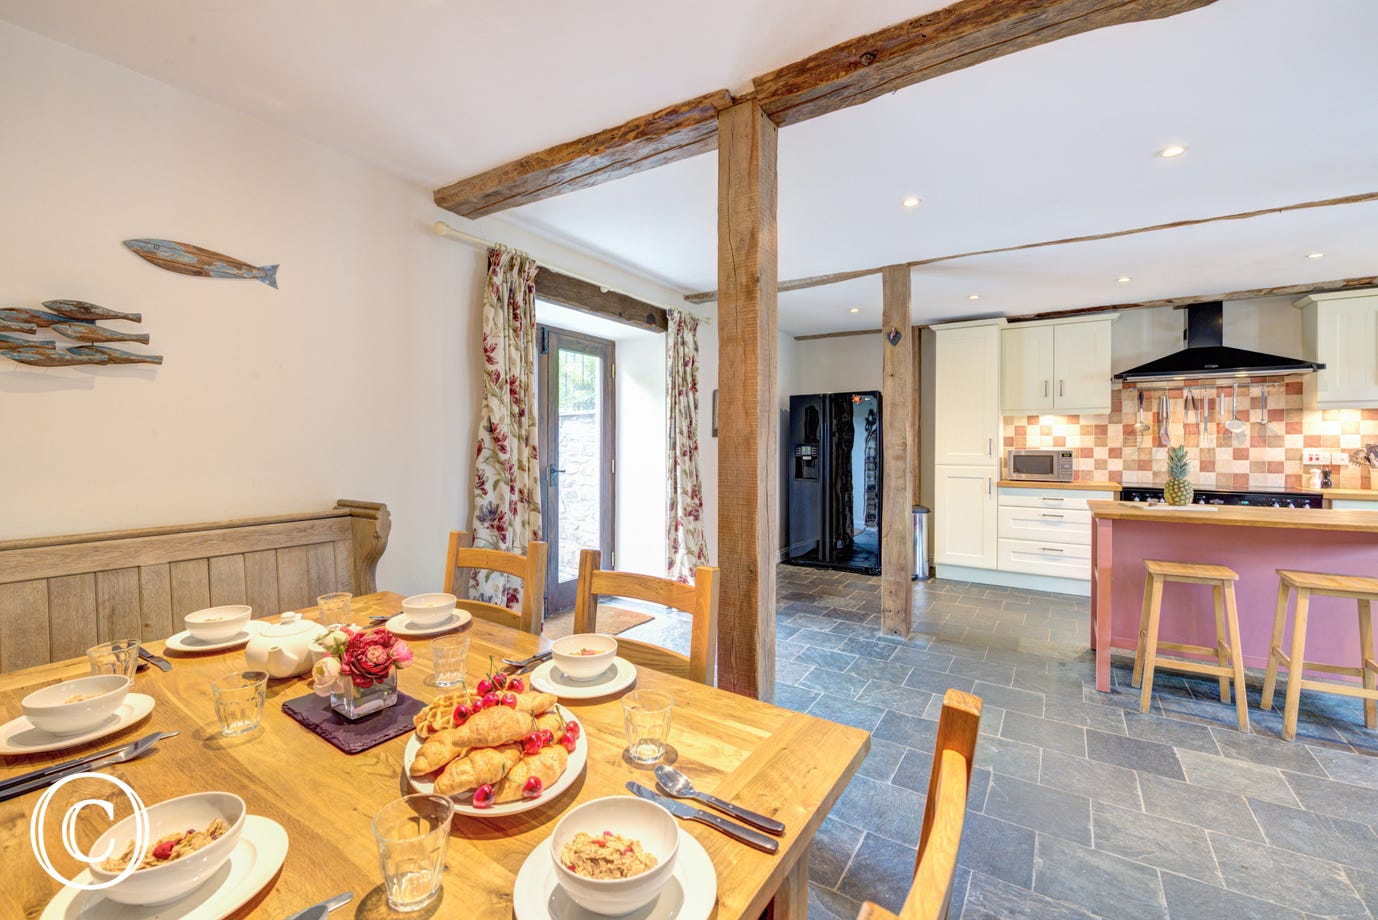 The kitchen is full of character with beams and a slate floor